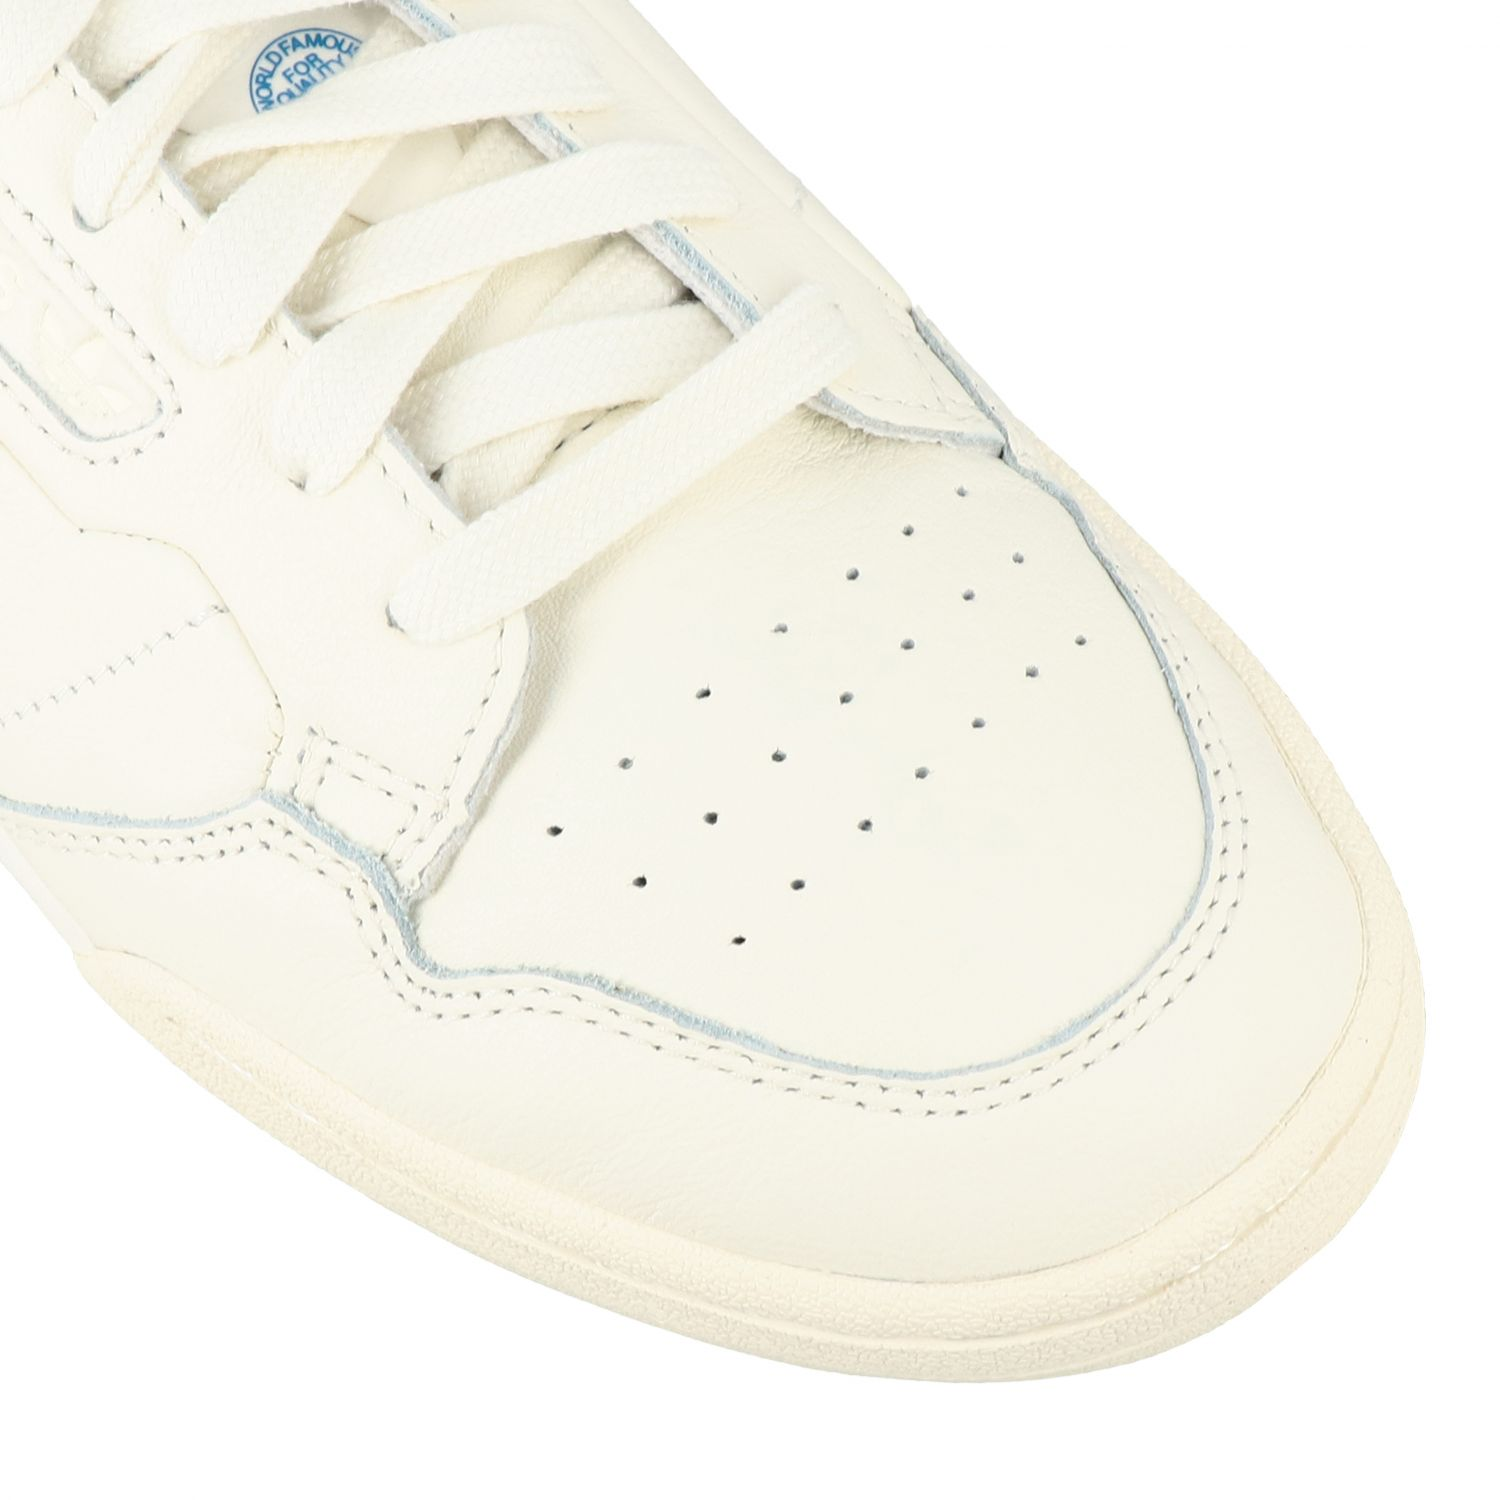 Sneakers Adidas Originals: Continental 80 Adidas Originals Sneakers aus Leder yellow cream 4